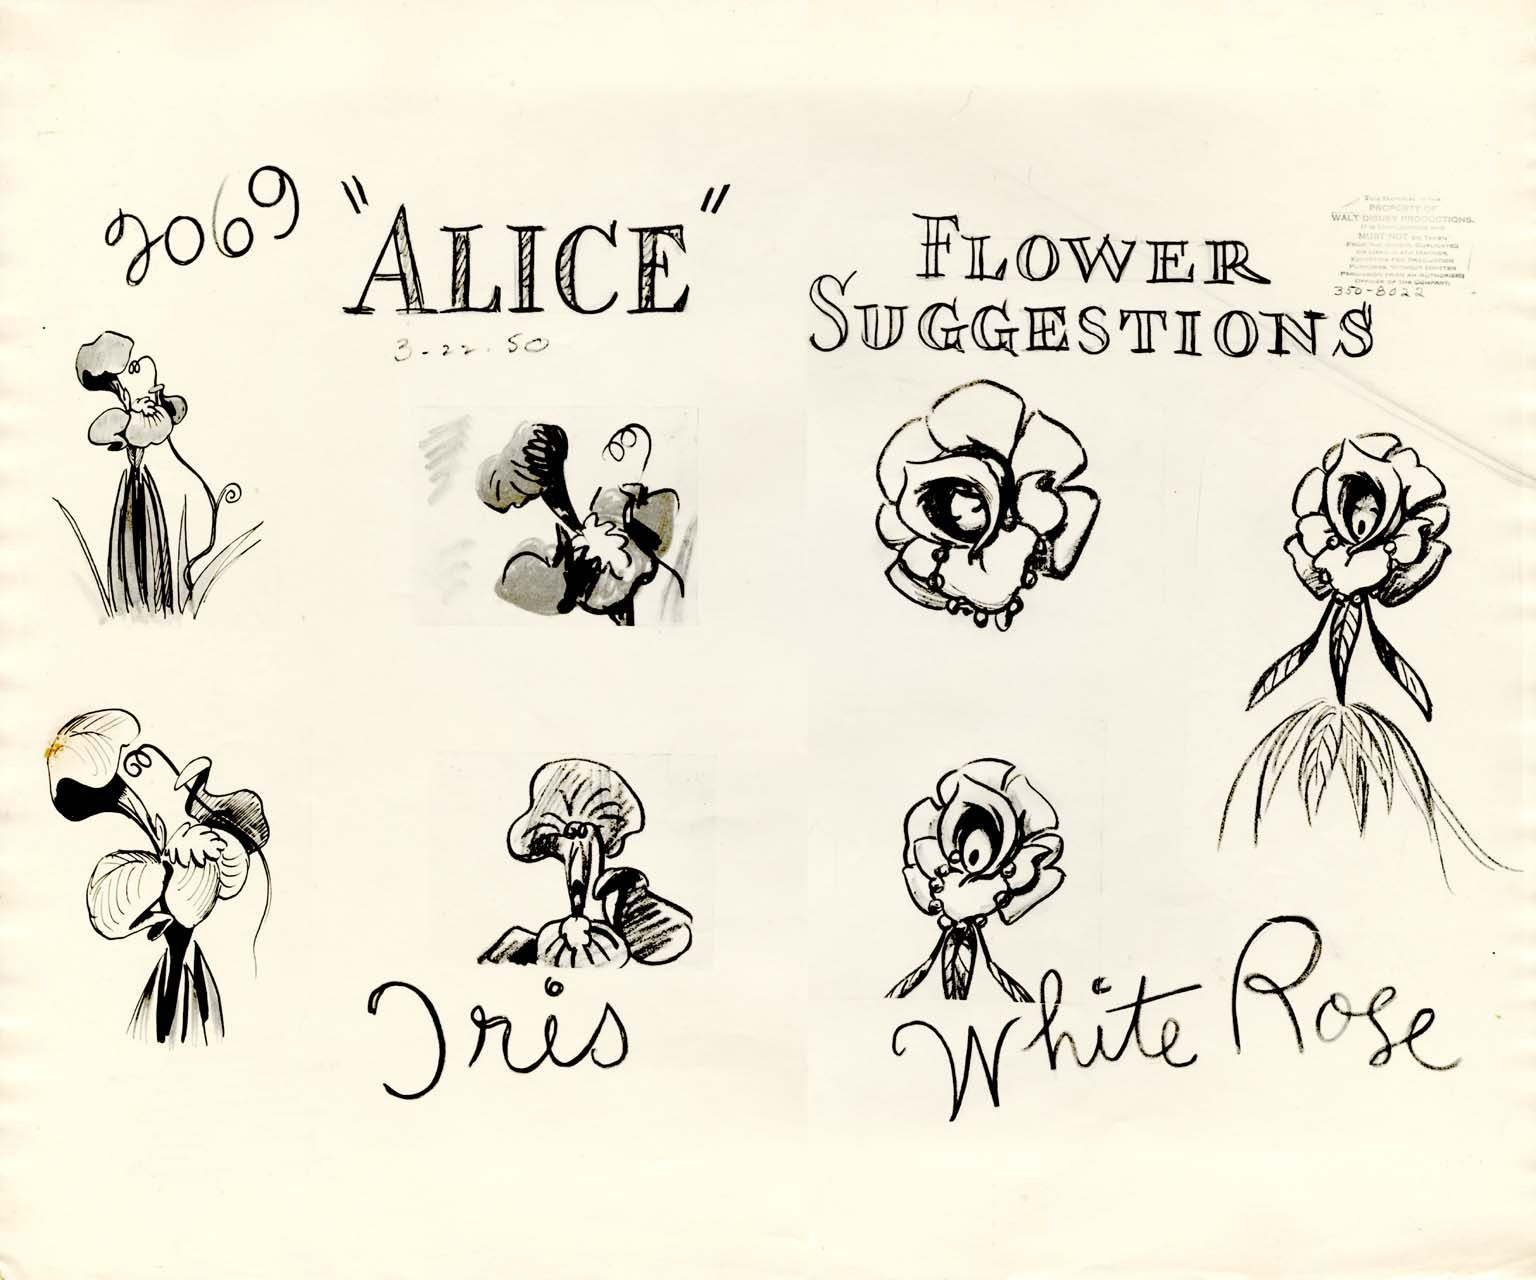 More flowers from march 22 1950 in this iris and white rose model more flowers from march 22 1950 in this iris and white rose model sheet there must have been a reason all these flowers were submitted on izmirmasajfo